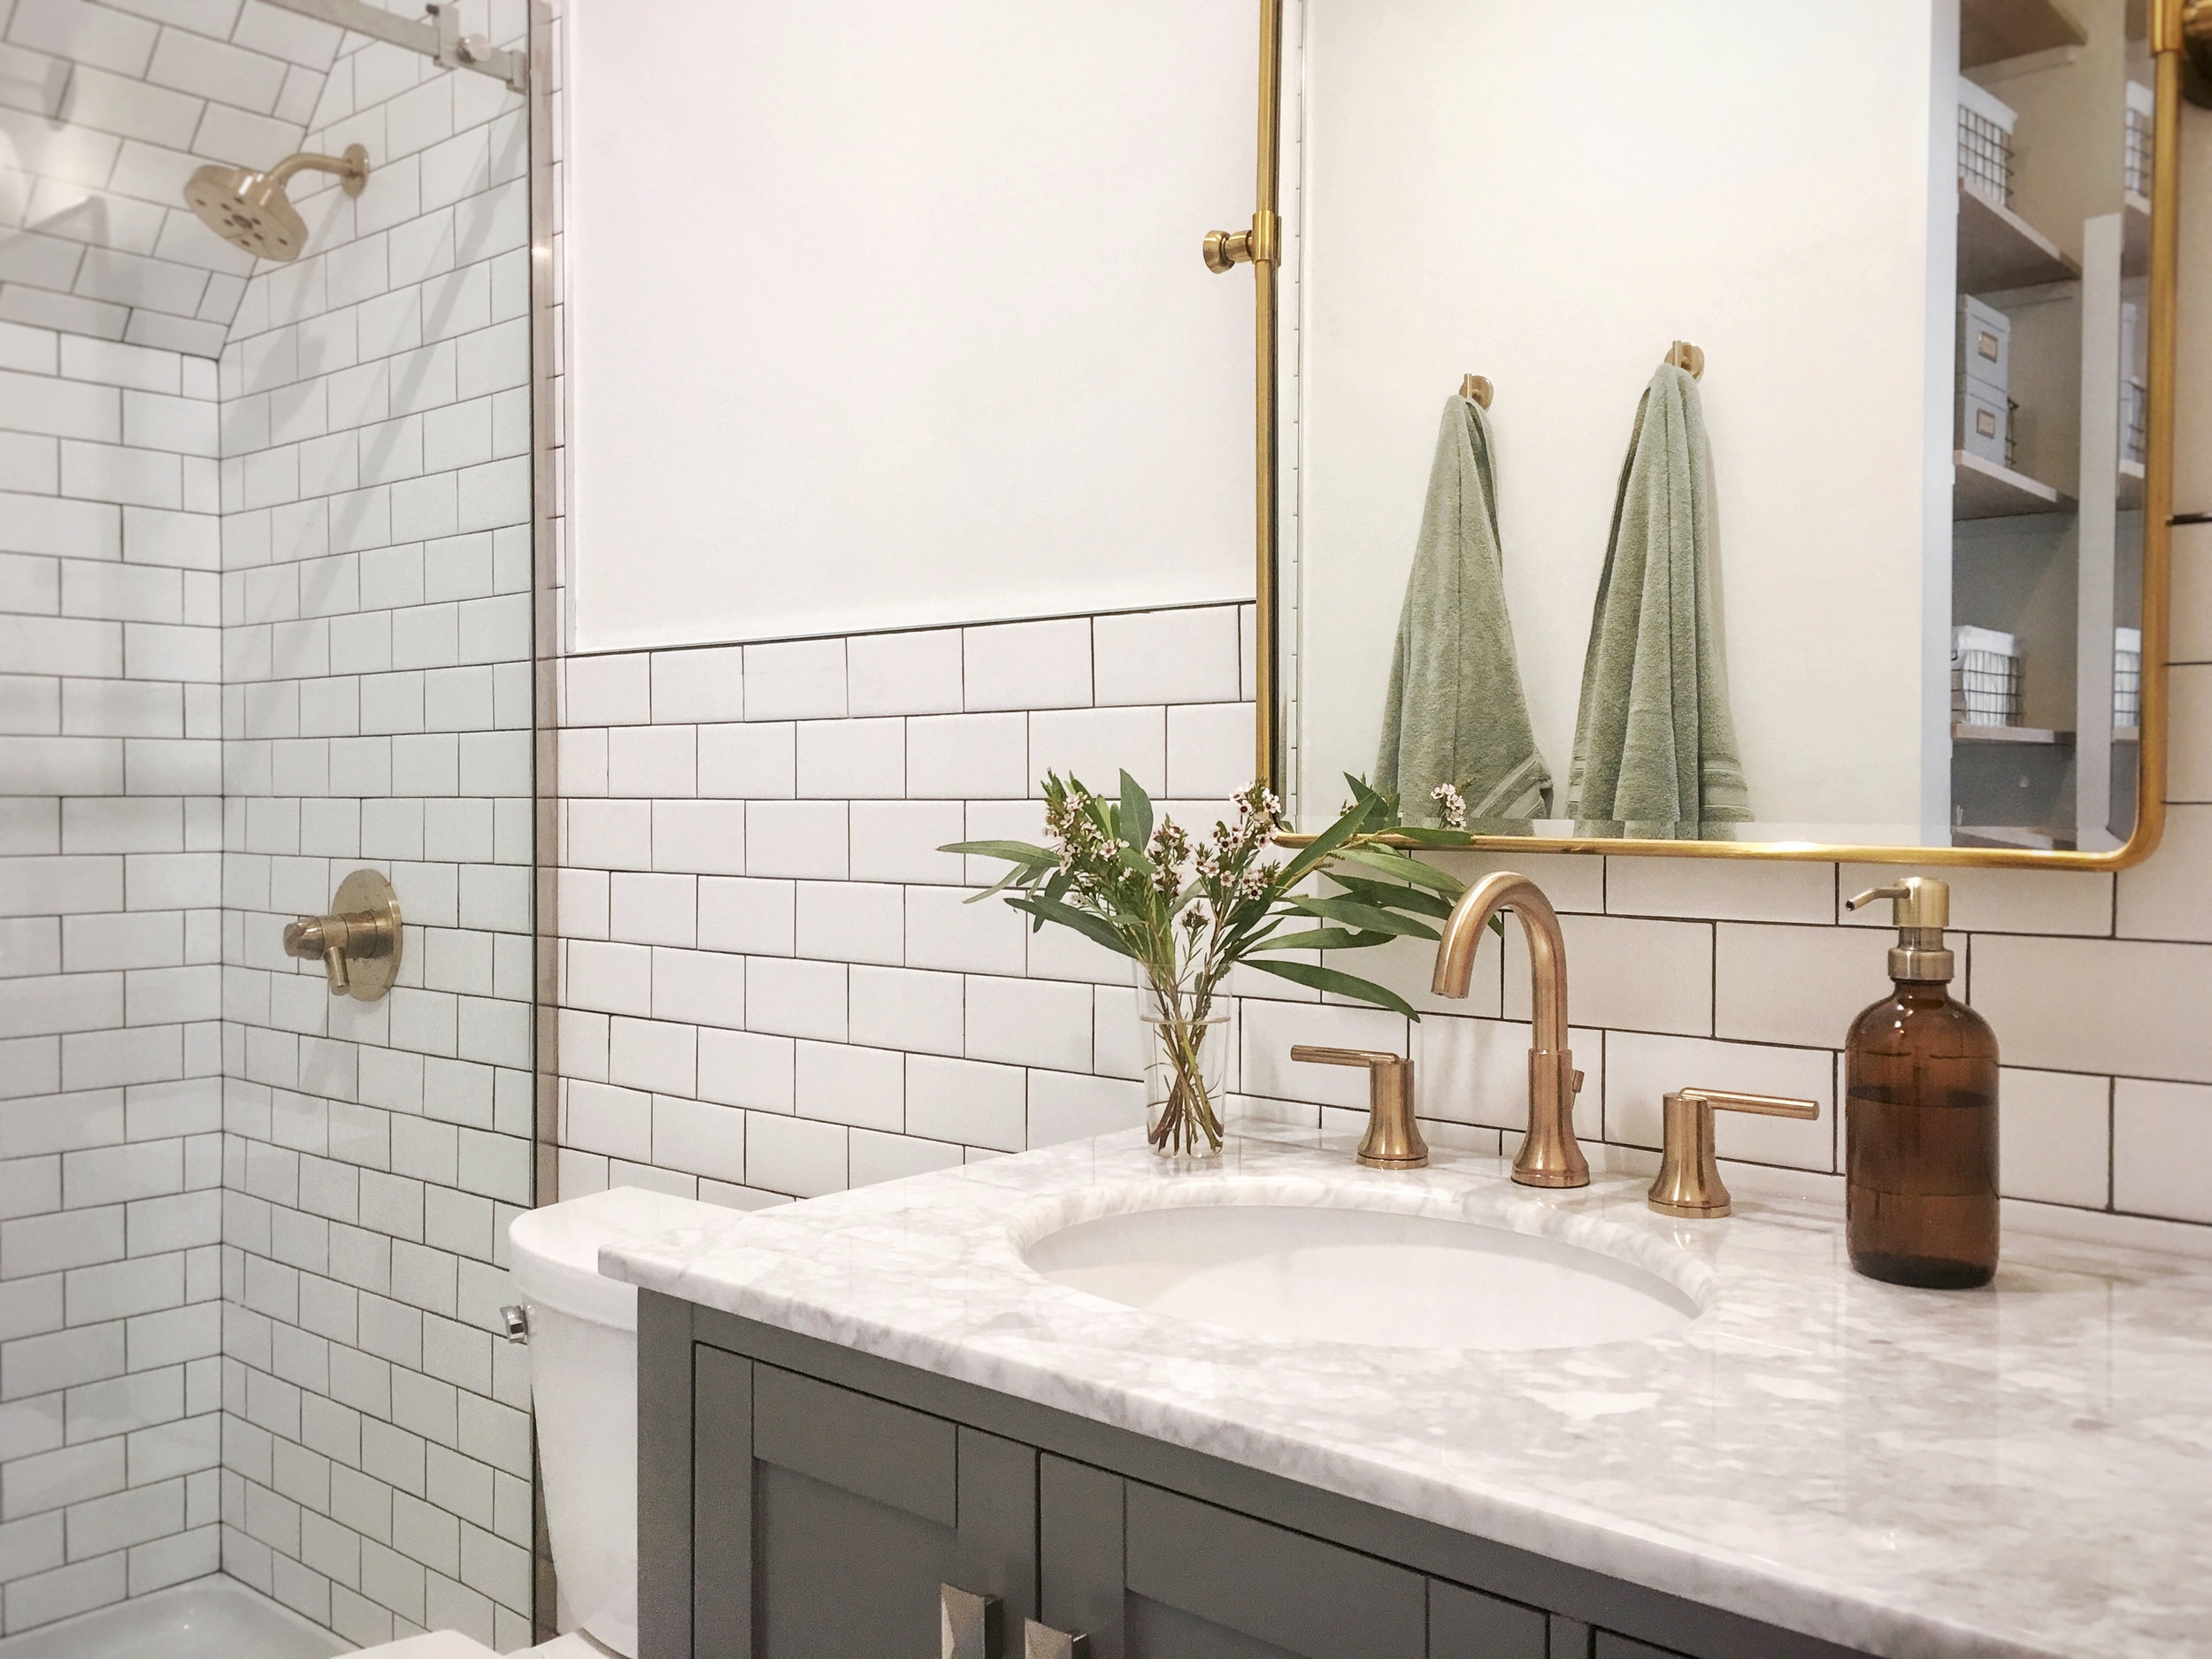 Lots of white tile, white marble, and brass fixtures brighten up the space and reinforce that vintage aesthetic.